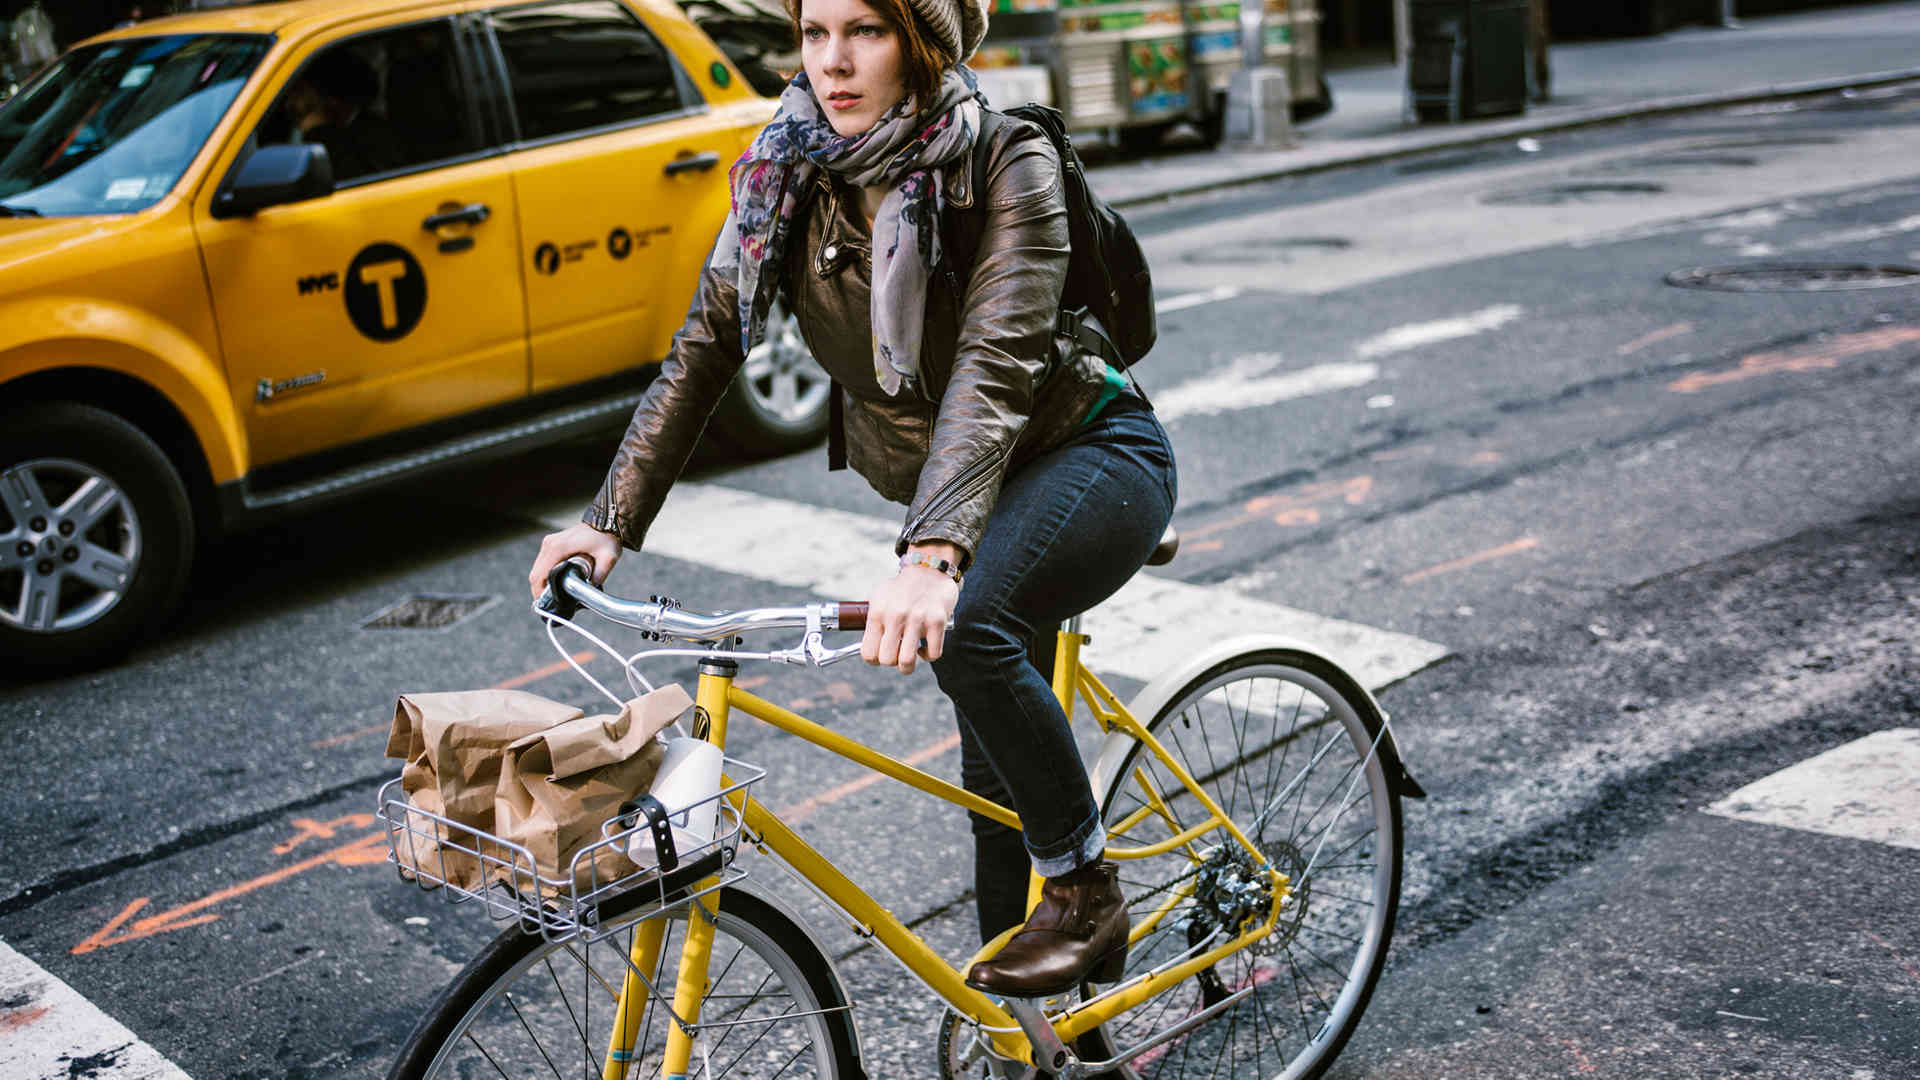 woman riding a city bike in NY city